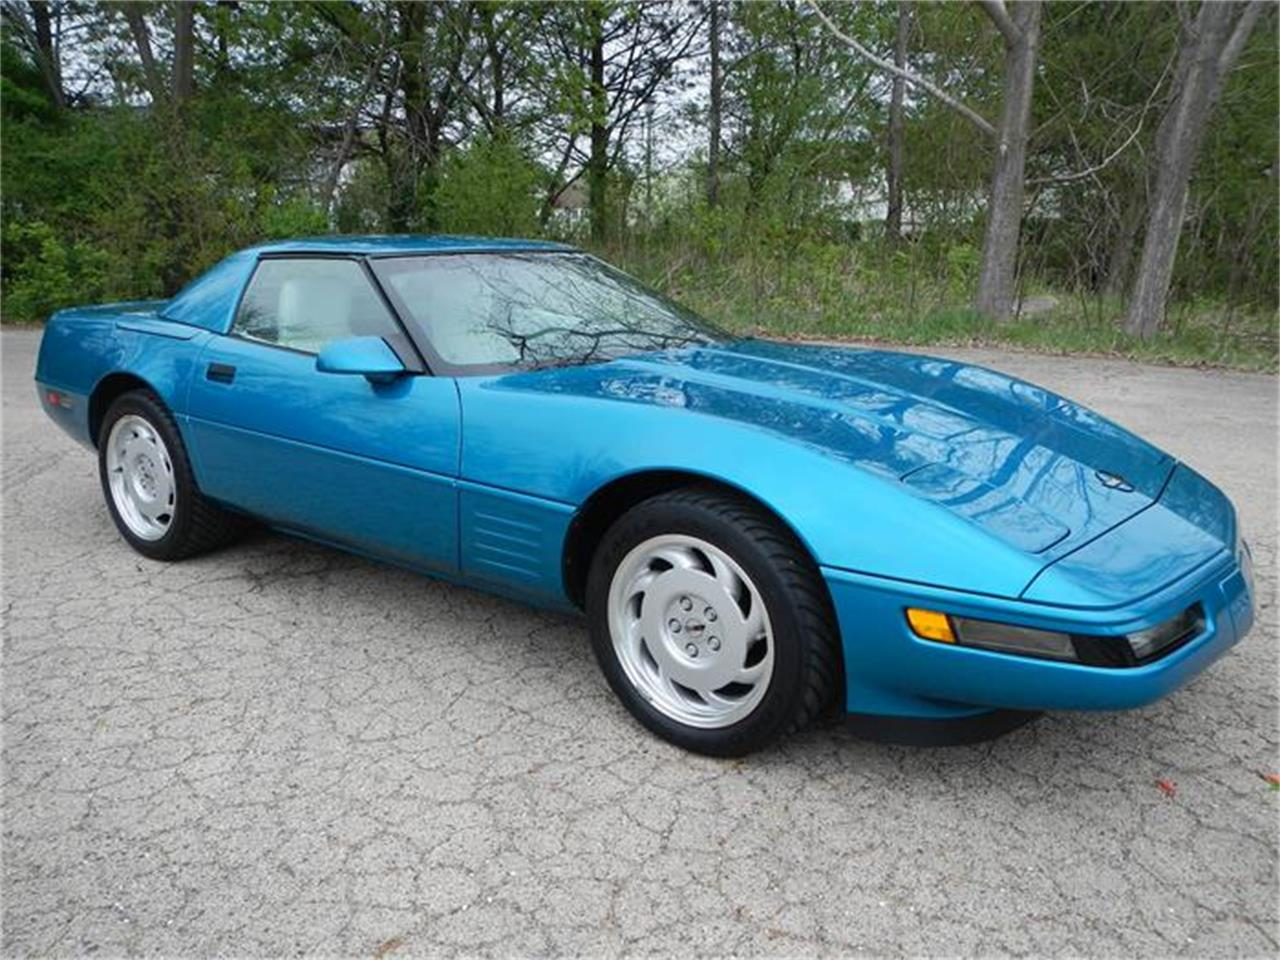 Large Picture of '92 Chevrolet Corvette located in St. Charles Illinois - $21,900.00 - HPXT